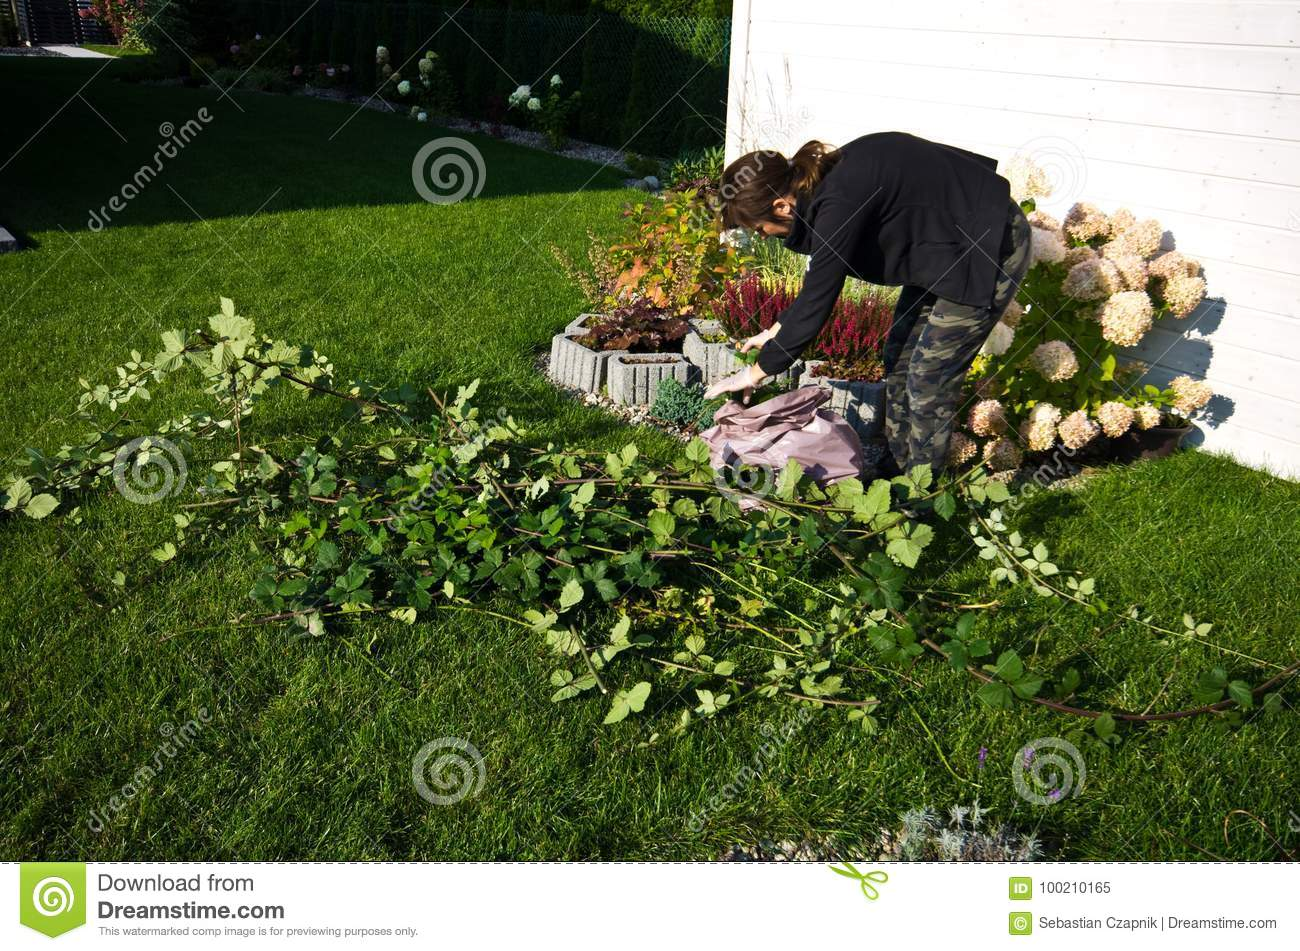 Woman working in a garden, cutting excess twigs of plants